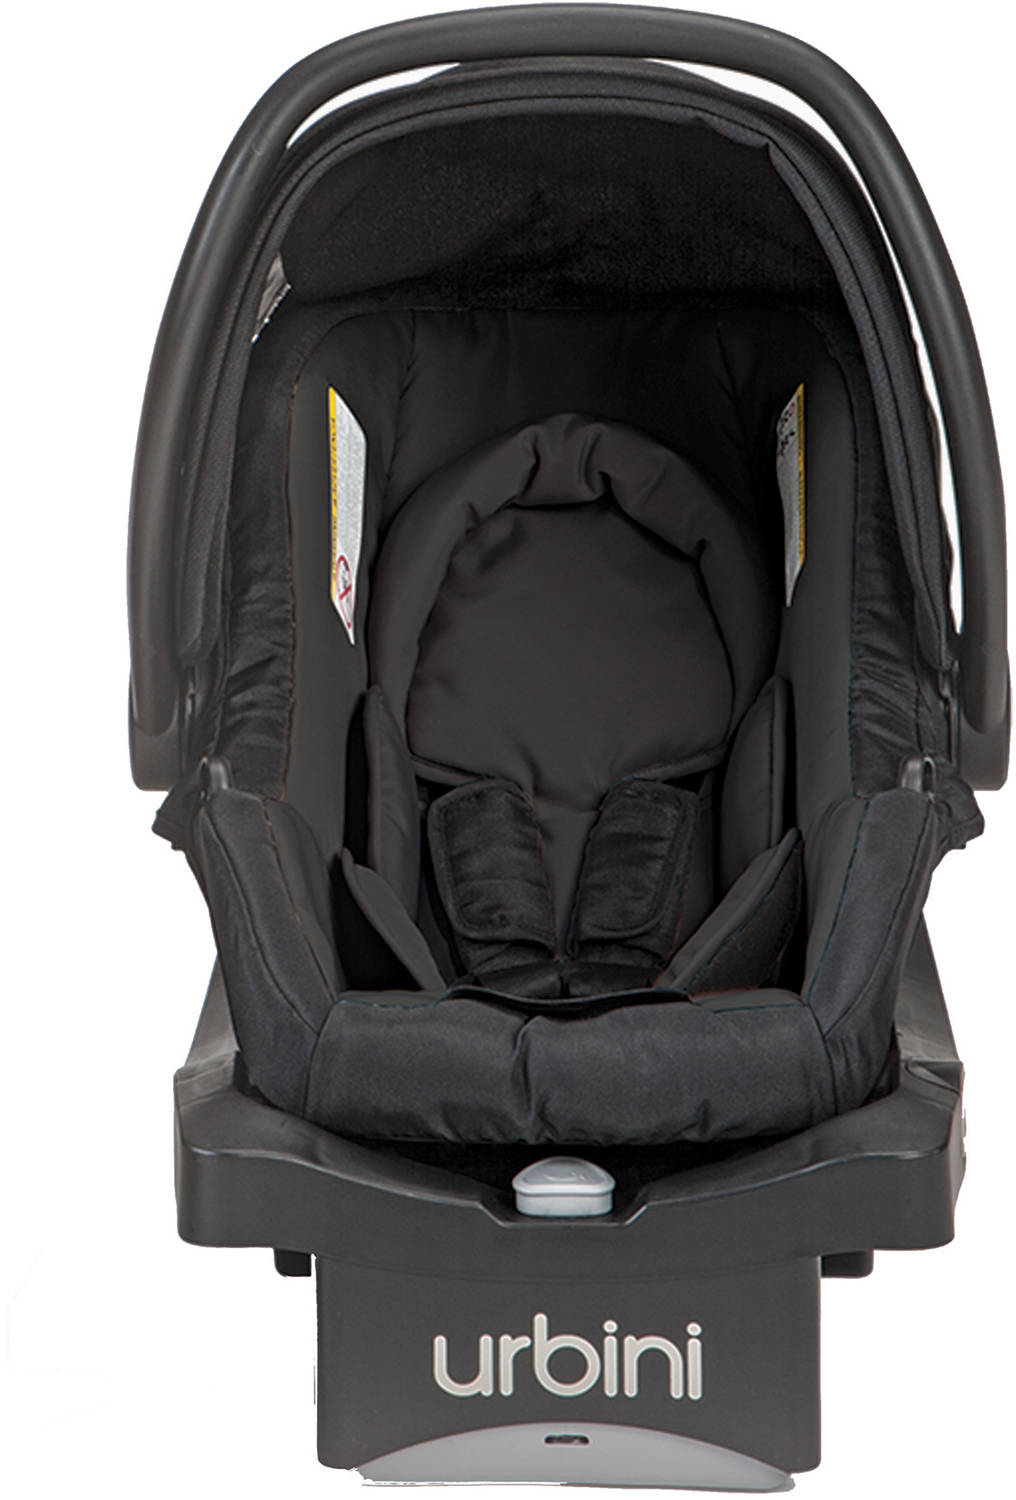 Urbini Sonti Infant Car Seat Black Lightweight Contoured Body Support Removable